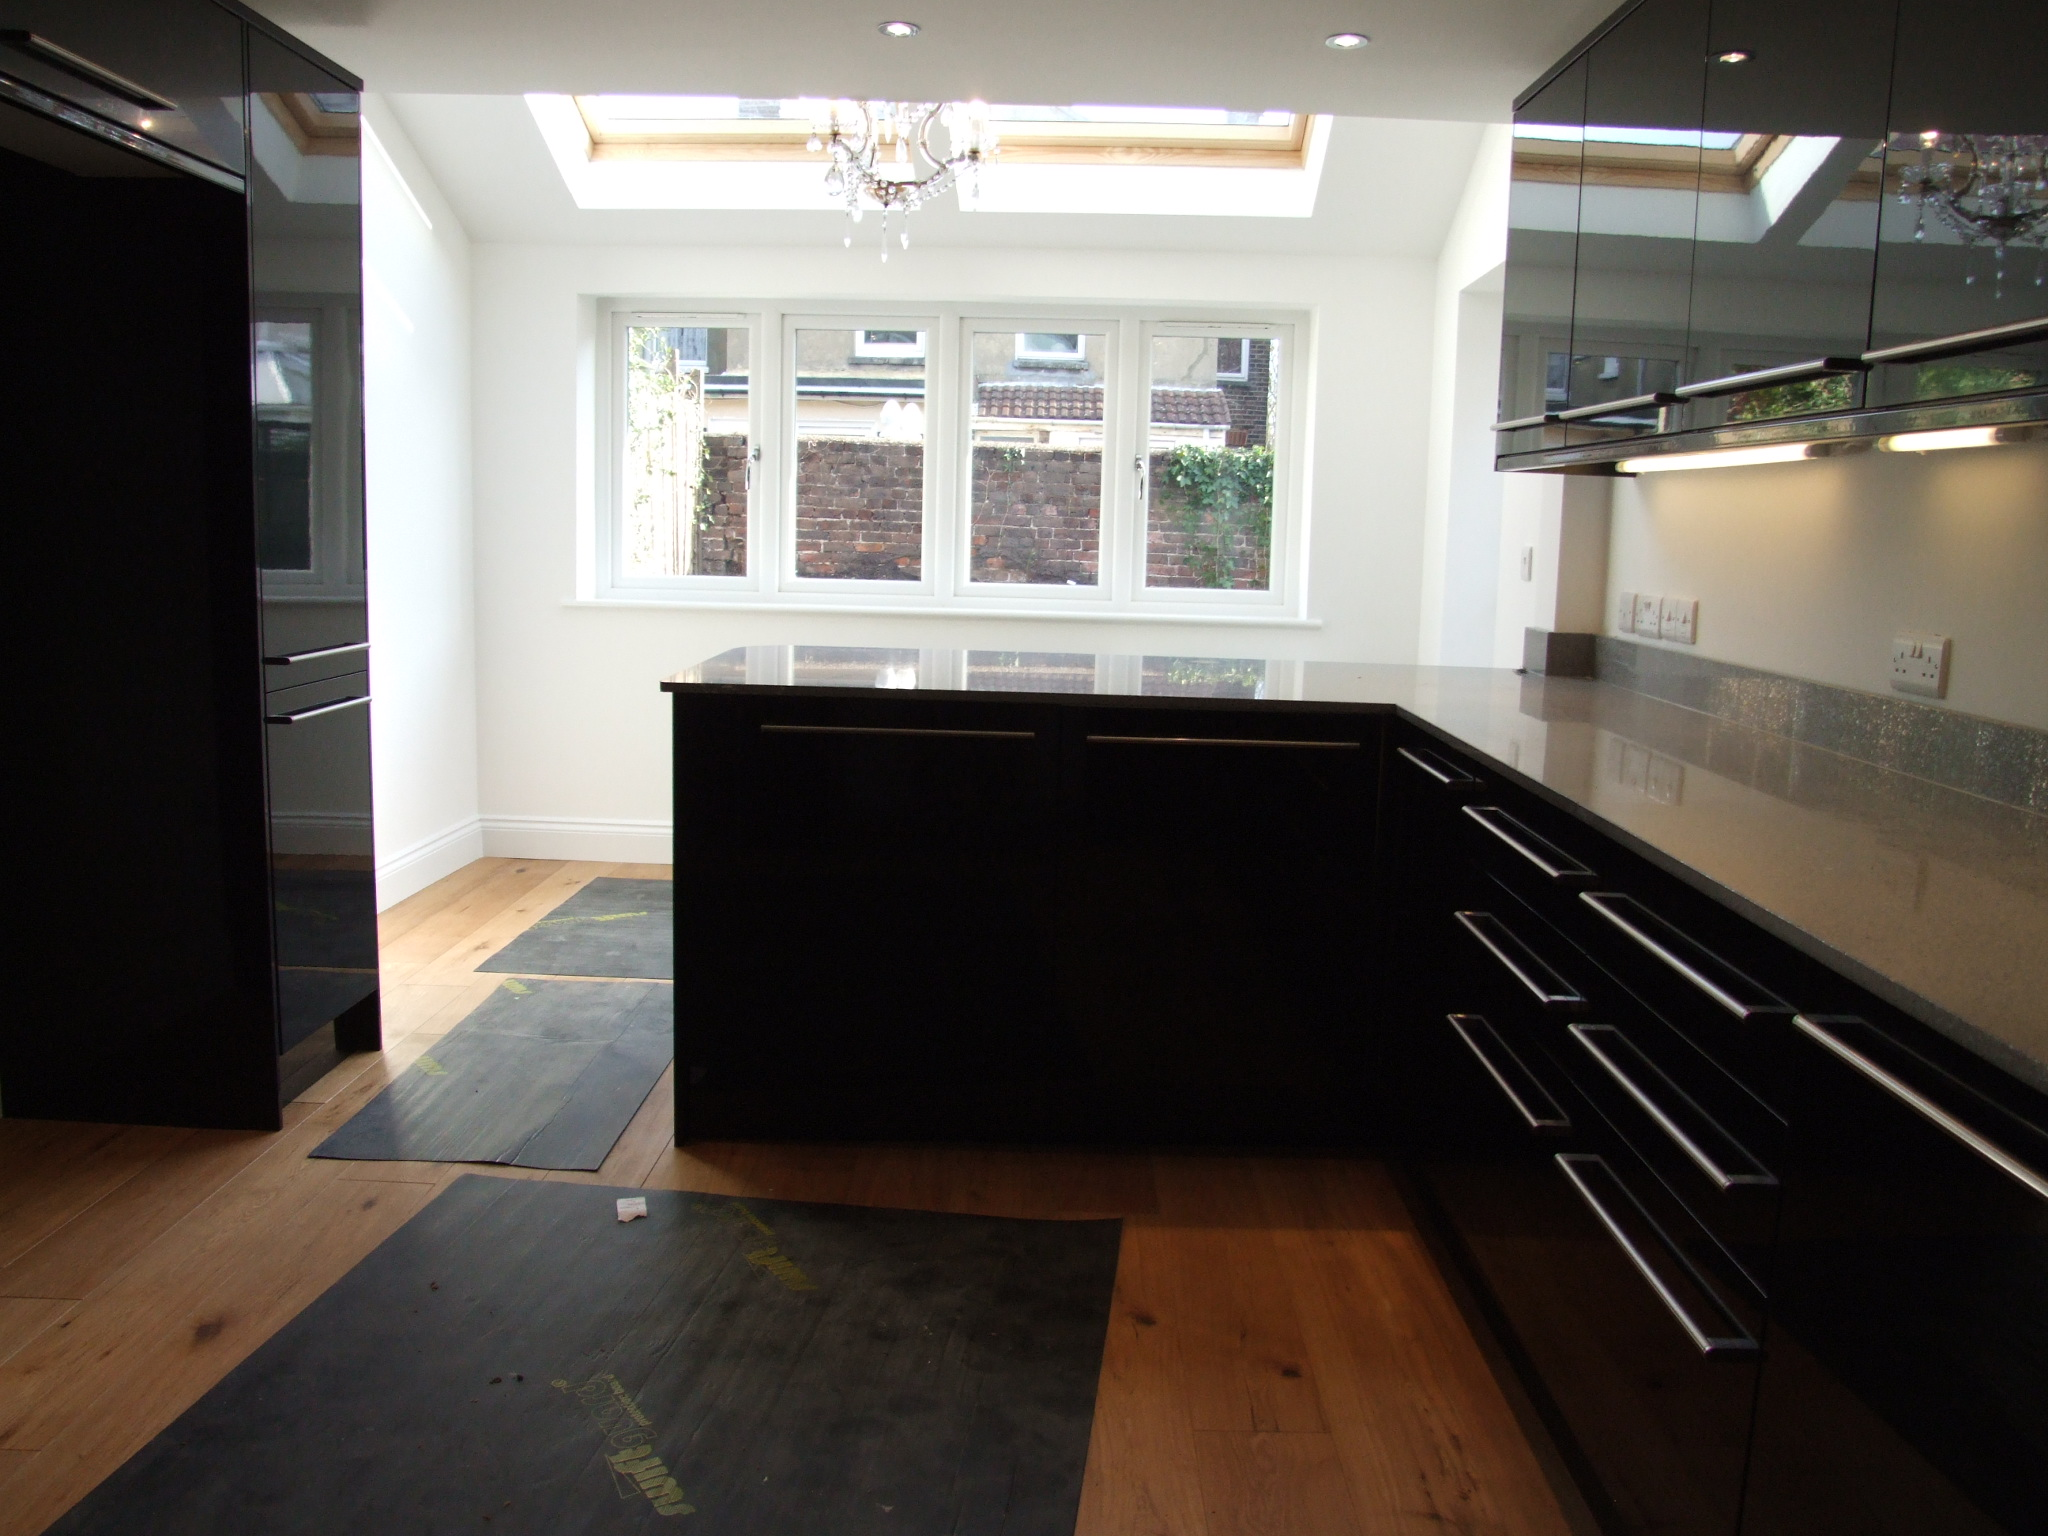 A shiny, modern newly fitted kitchen with extension